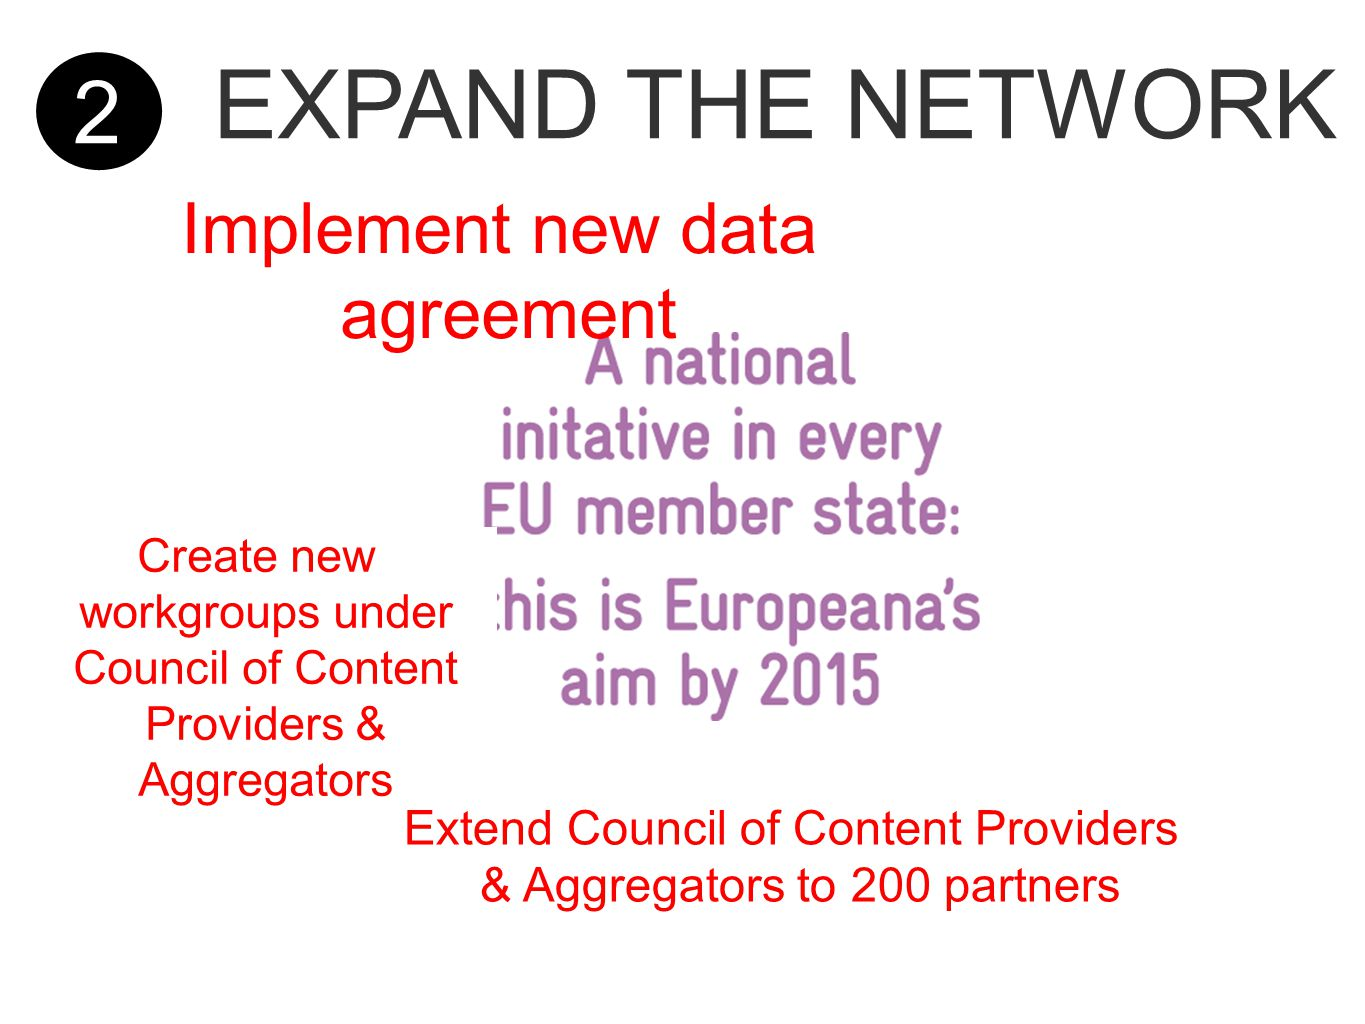 2 EXPAND THE NETWORK Extend Council of Content Providers & Aggregators to 200 partners Create new workgroups under Council of Content Providers & Aggregators Implement new data agreement